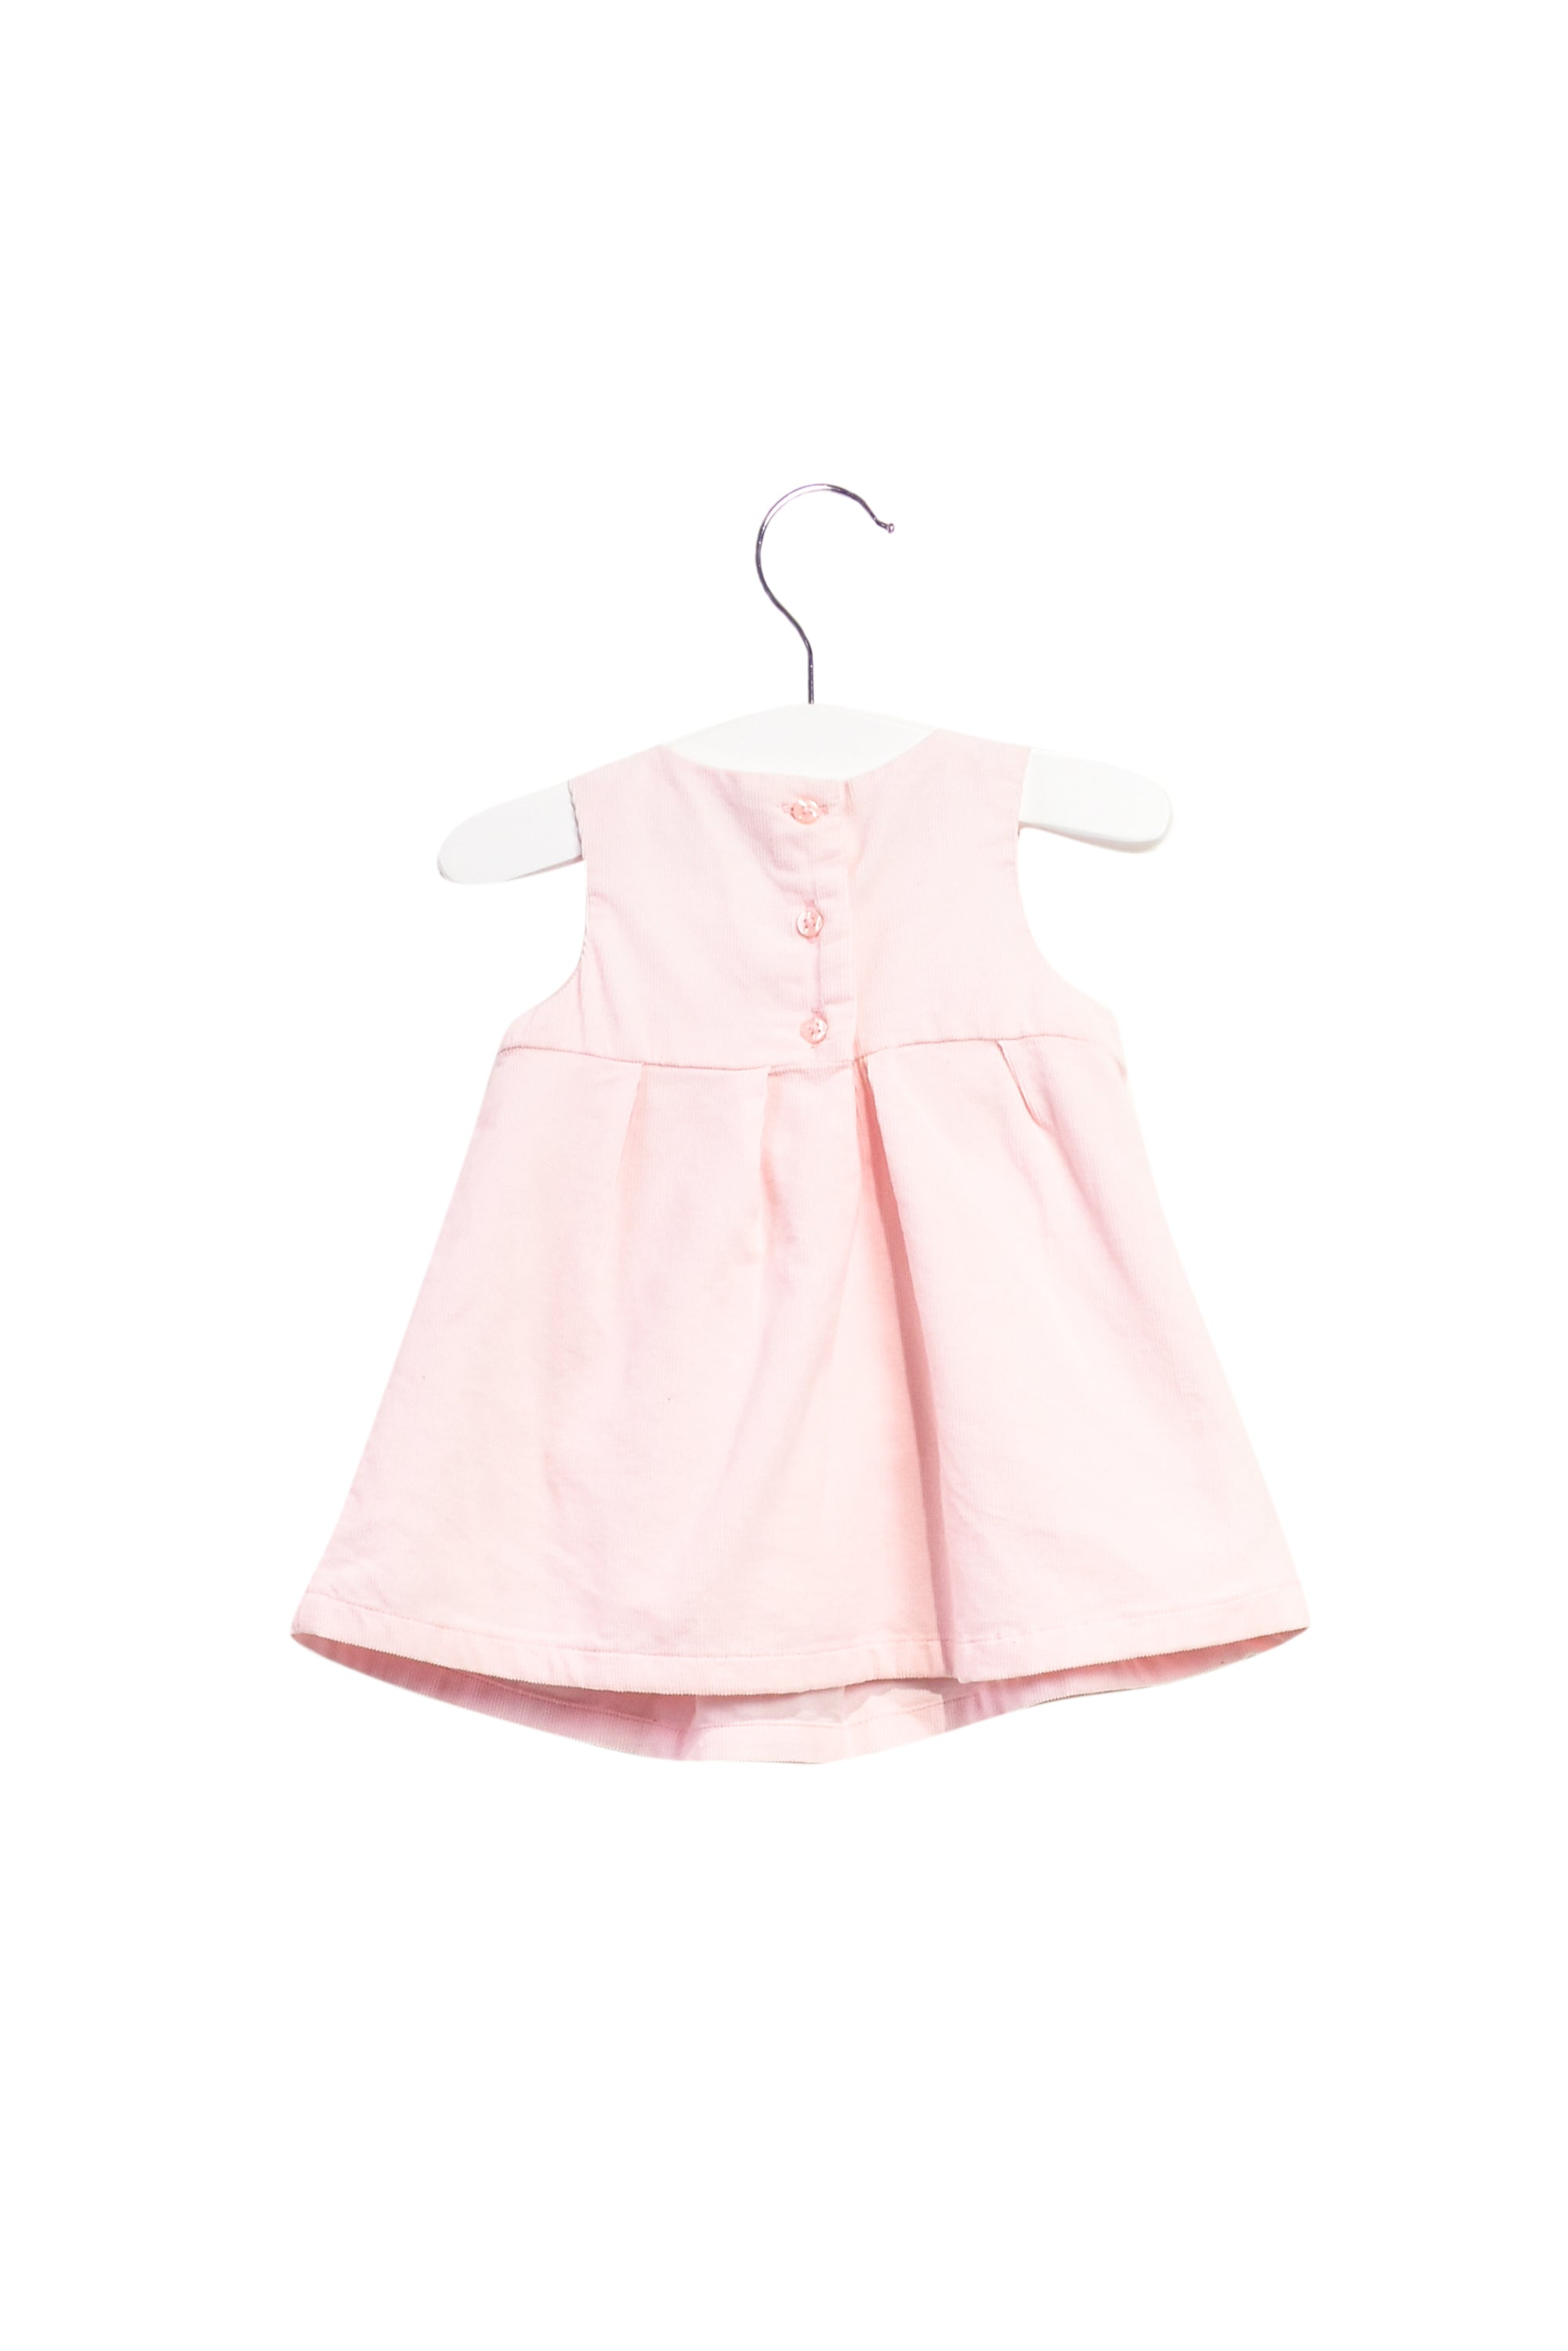 10023632 Janie & Jack Baby~Dress 3-6M at Retykle